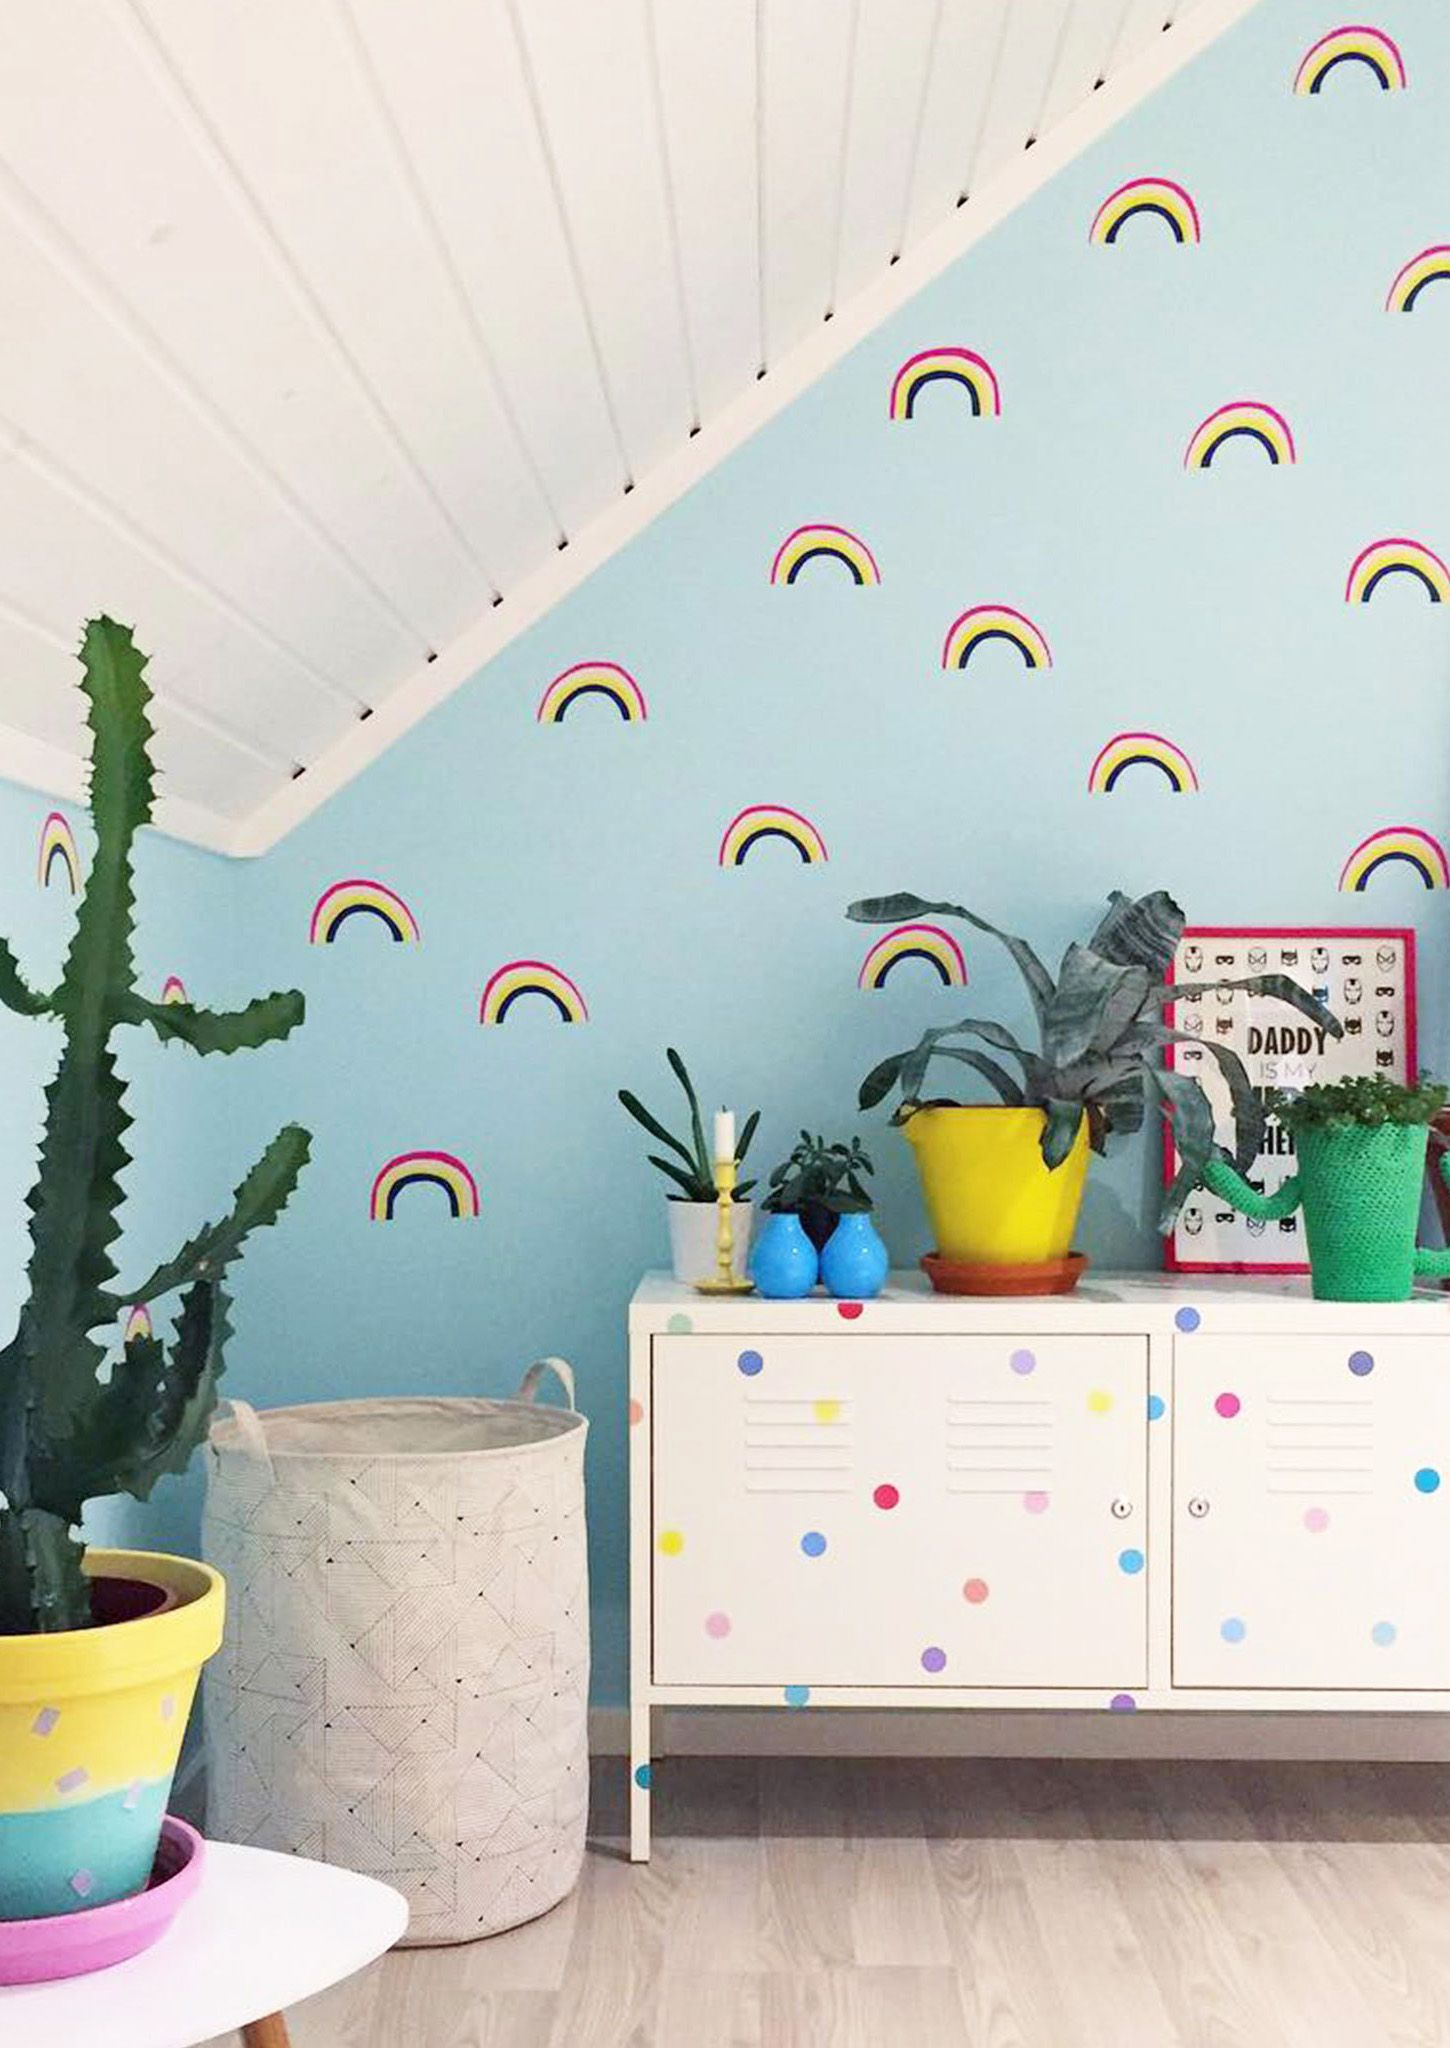 Rainbow Decals Make Any Space Feel Playful And Creative